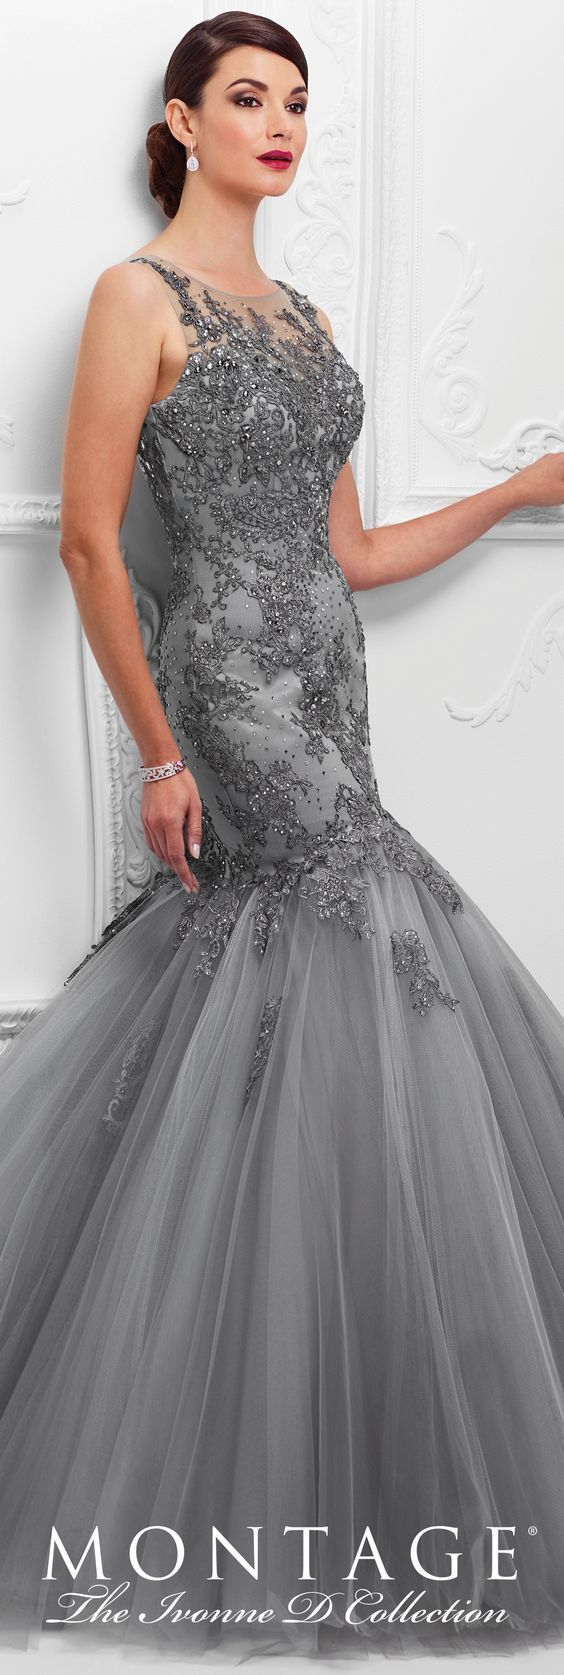 best gowns images on pinterest classy dress formal prom